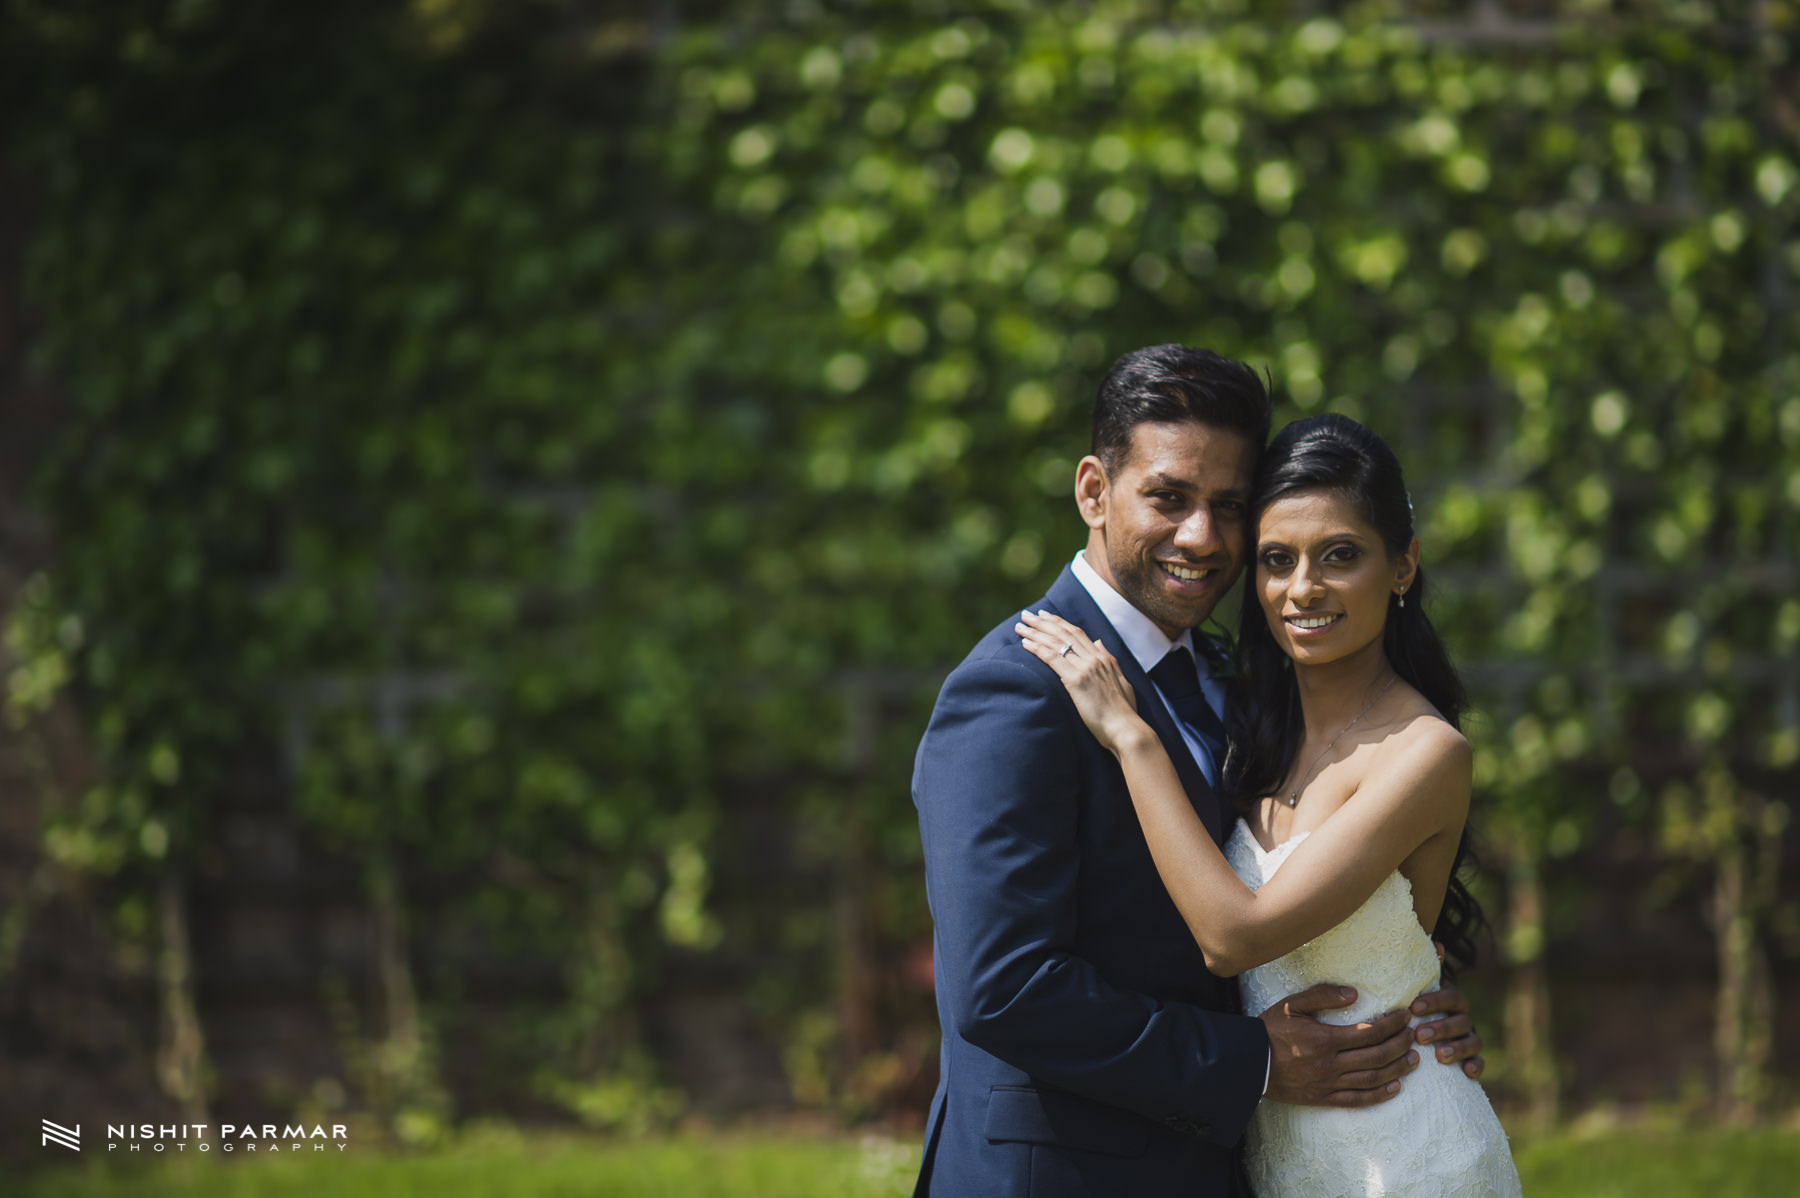 Civil Wedding Laura Ashley Manor Elstree London Wedding Photographer - bride and groom portrait in landscaped garden